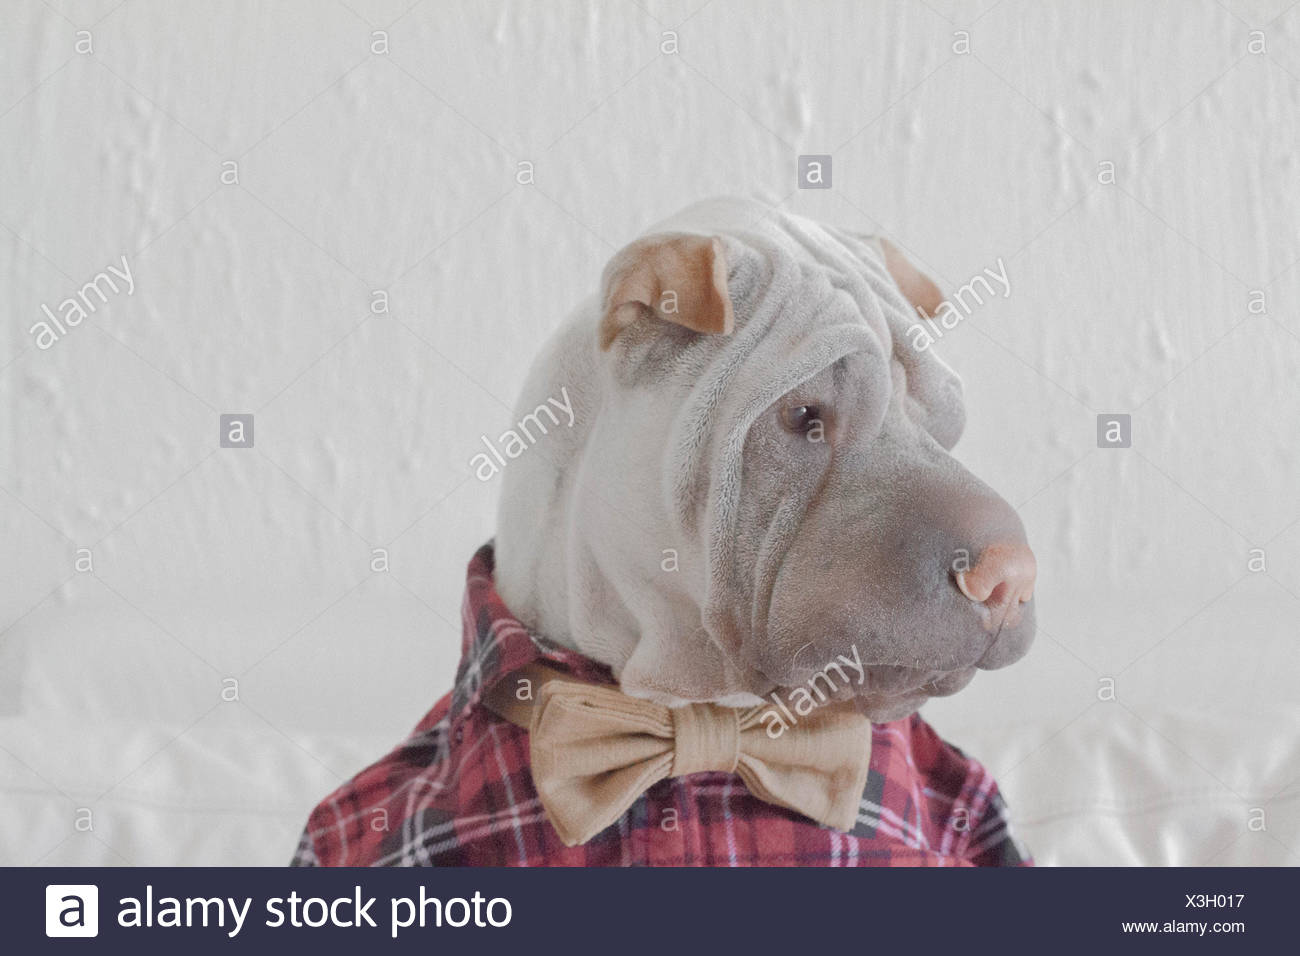 Portrait of shar-pei dog in shirt and bowtie - Stock Image